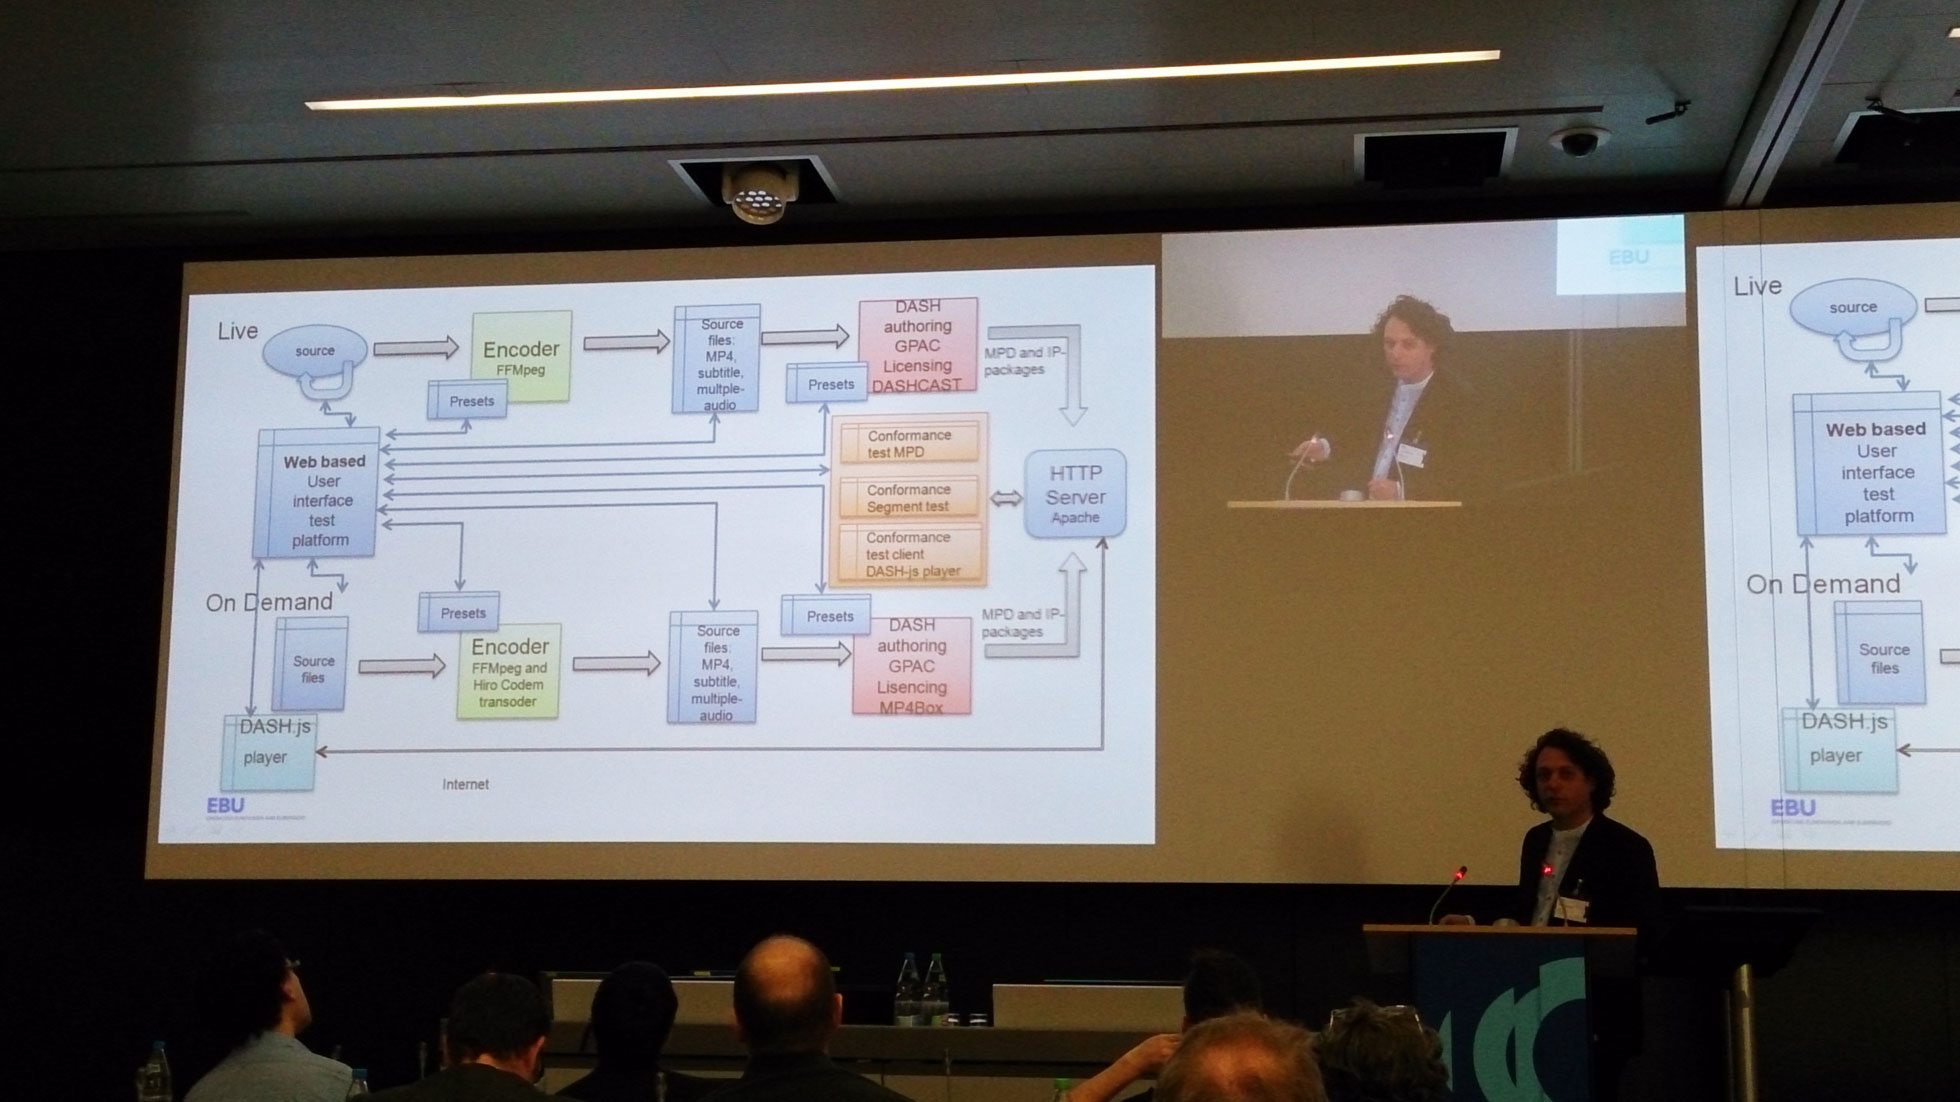 Bram Tullemans presenting EBU's Reference Test Engine For Encoding